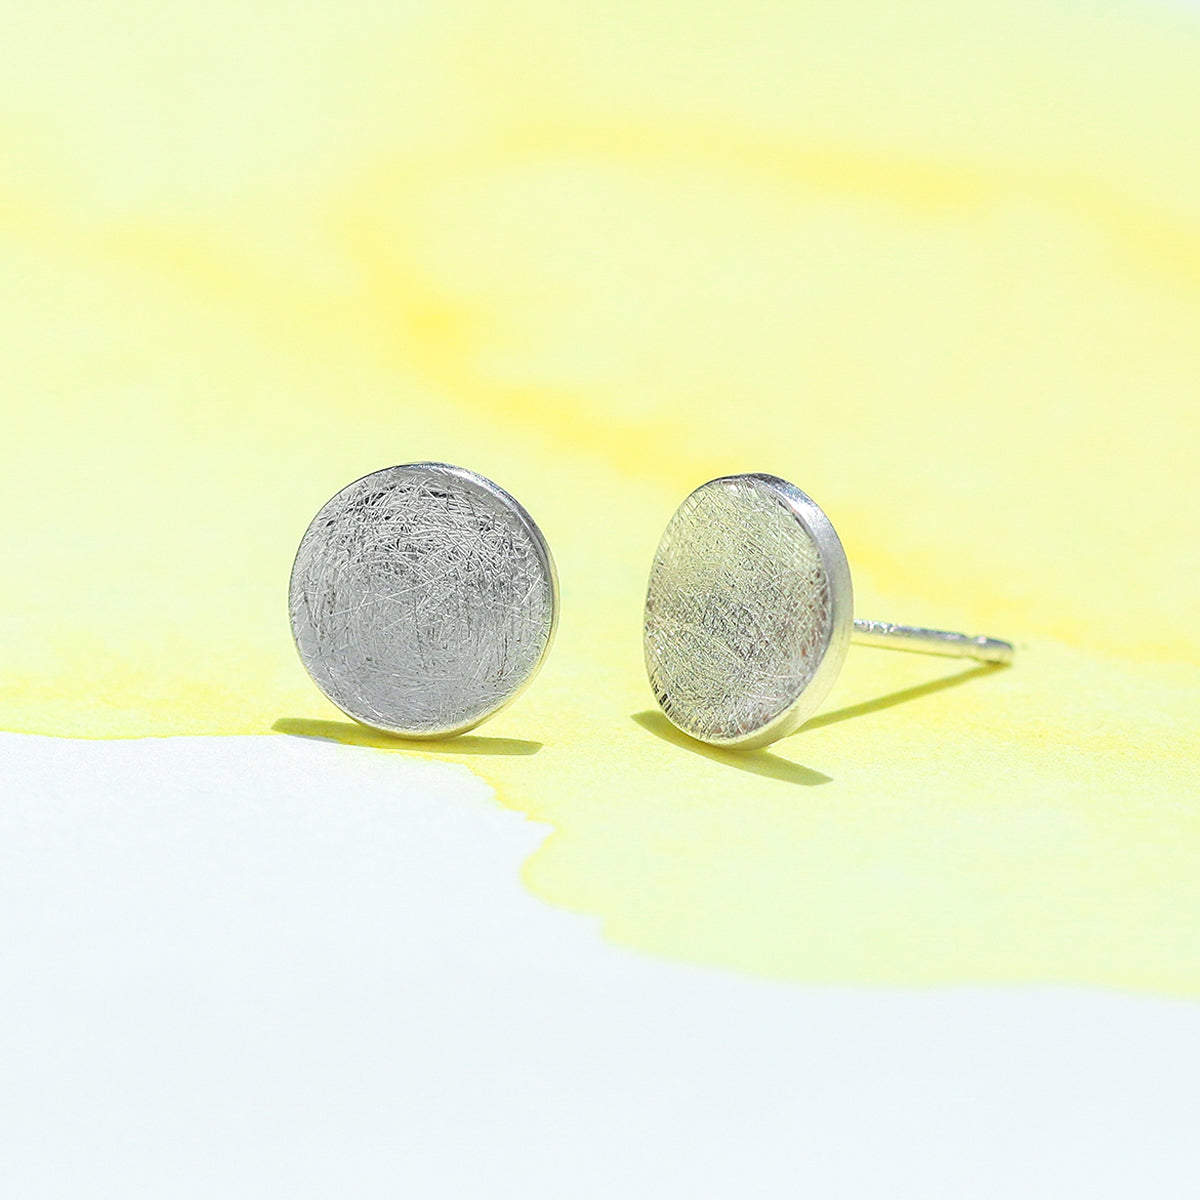 18a8a699a SILVER ICED FINISH ROUND STUD